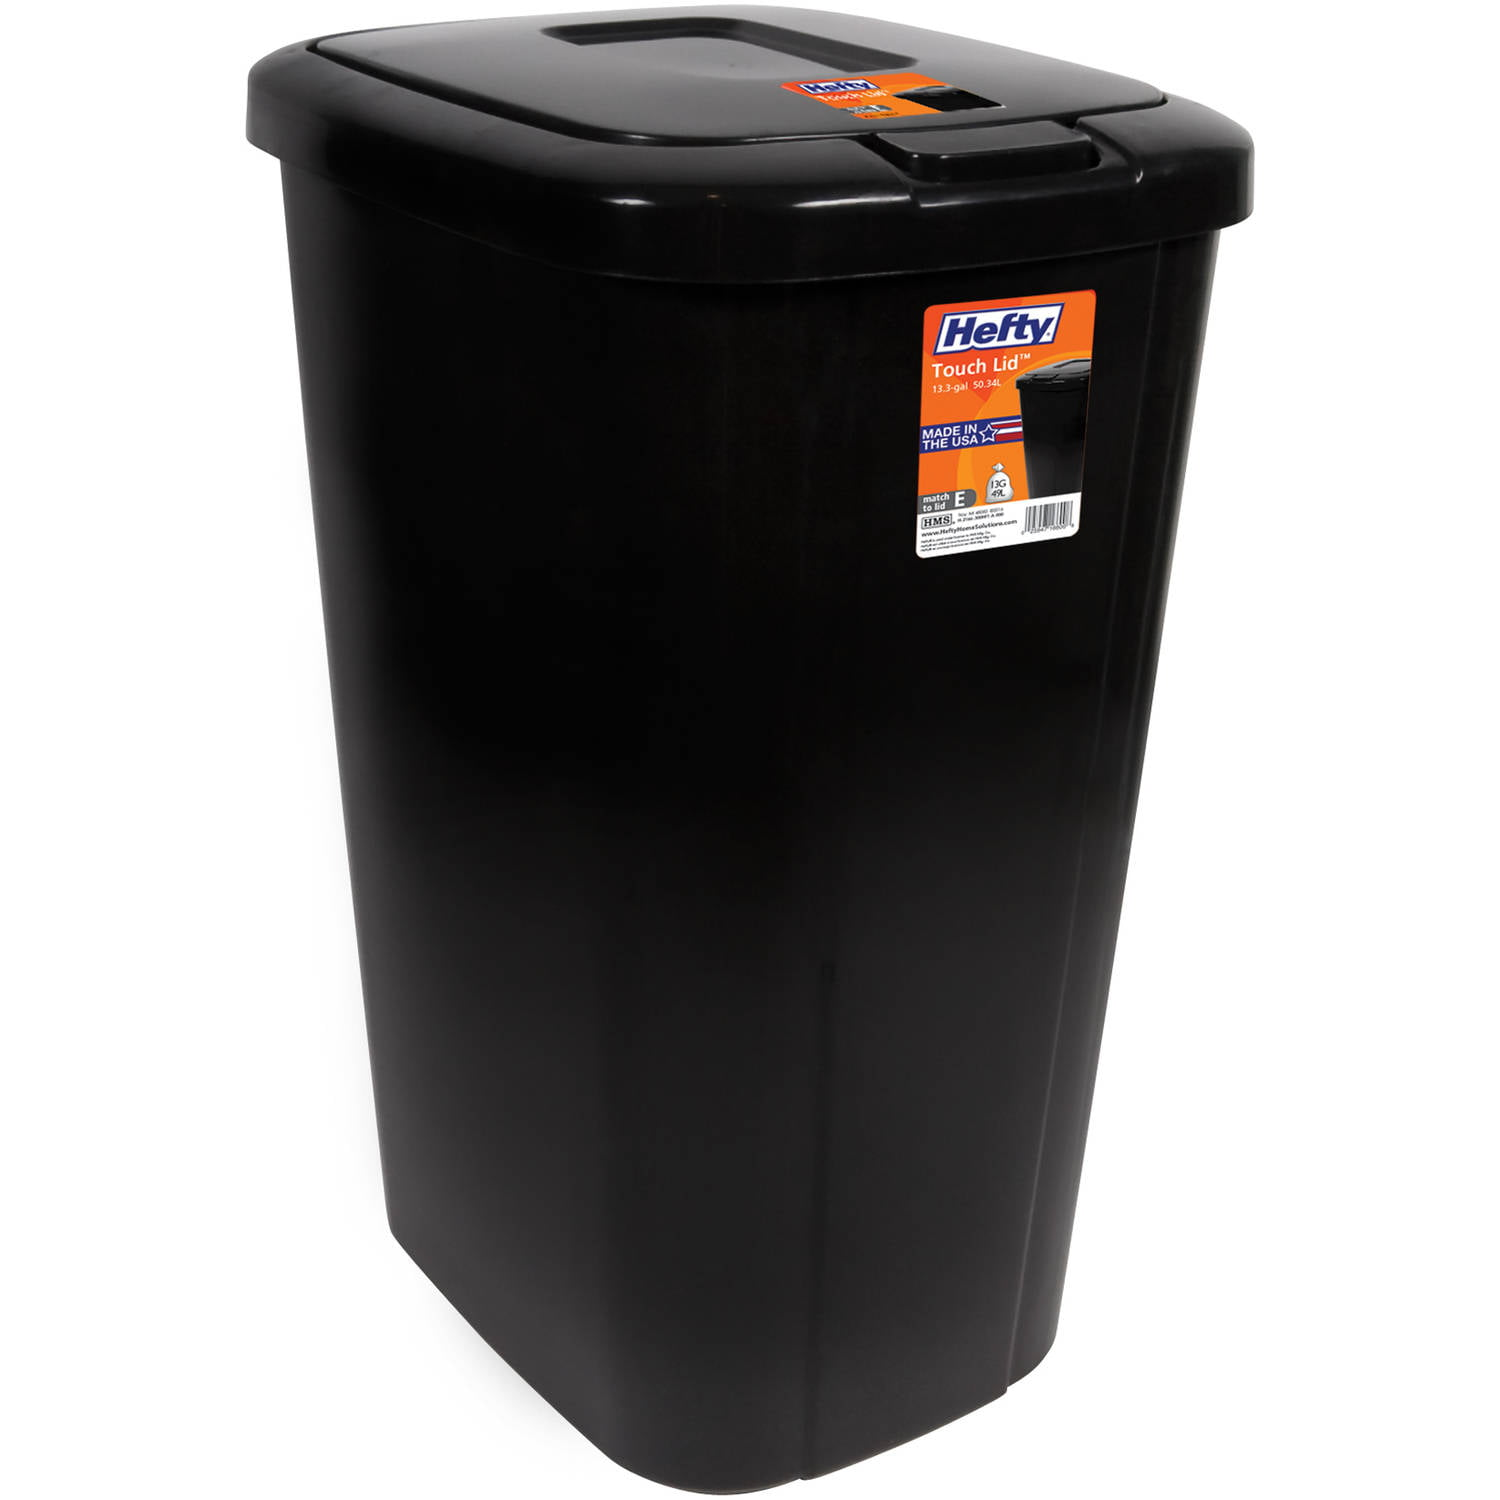 Hefty Touch Lid 133 Gallon Trash Can Black Walmartcom